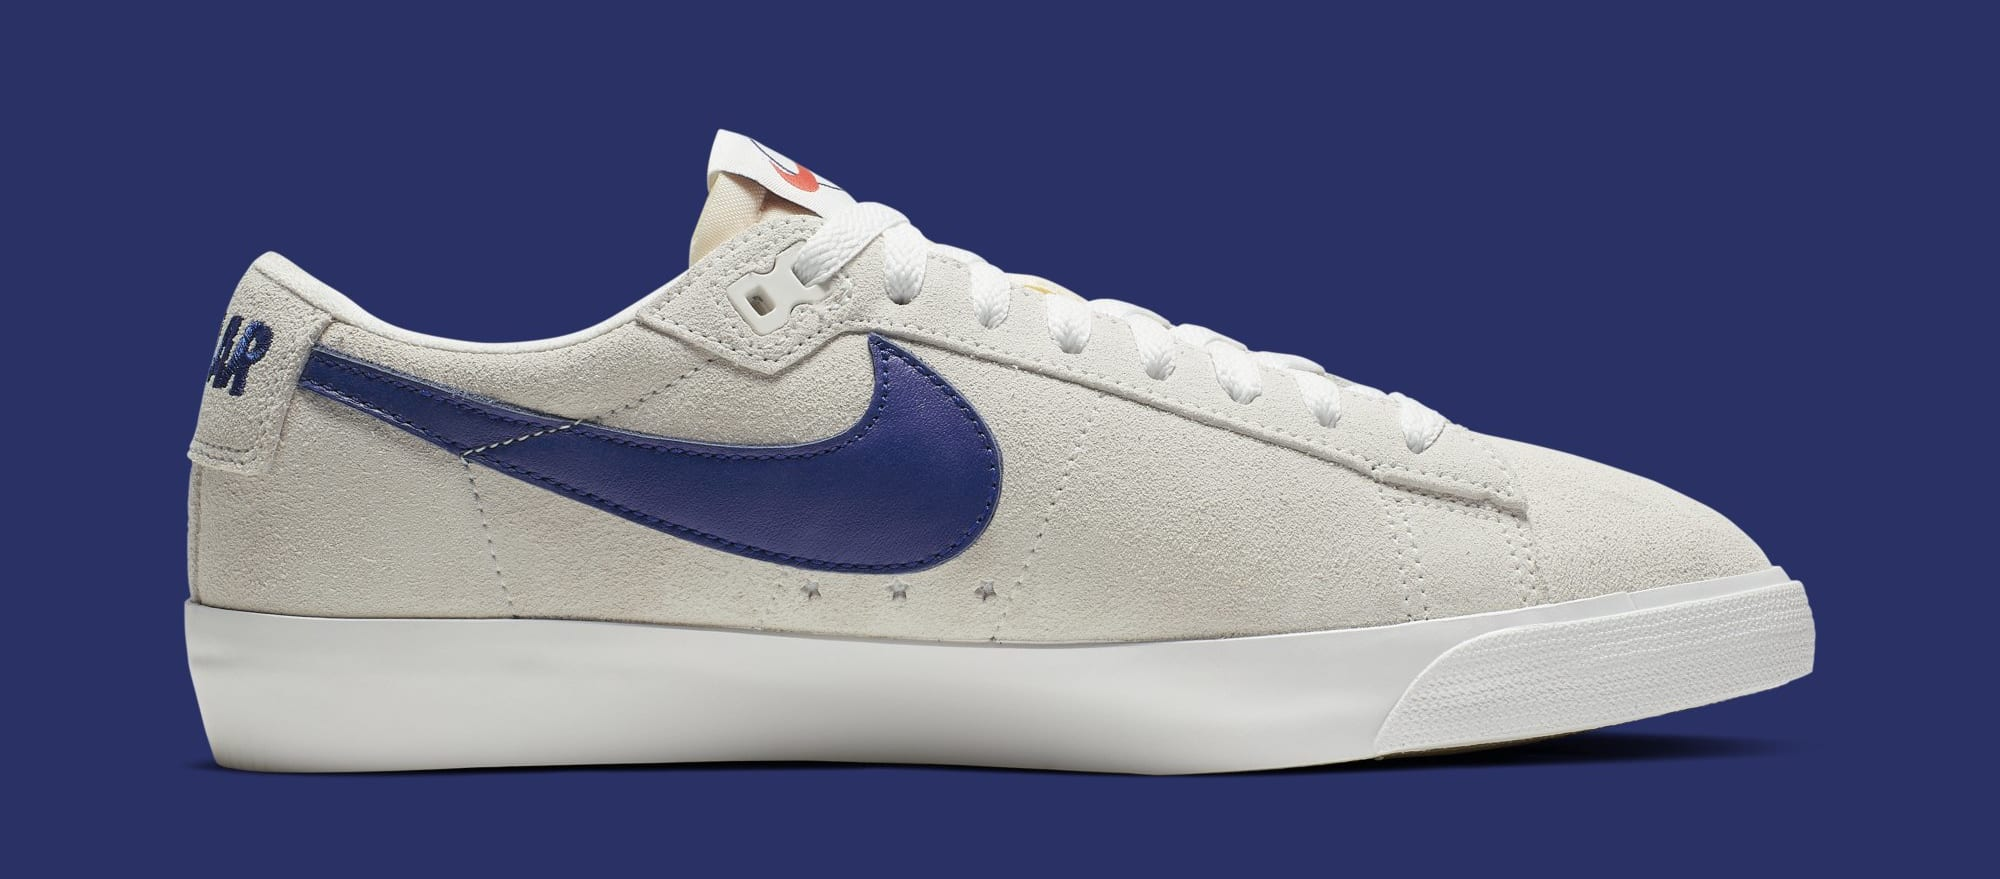 Polar Skate Co. x Nike SB Blazer Low AV3028-100 (Medial)